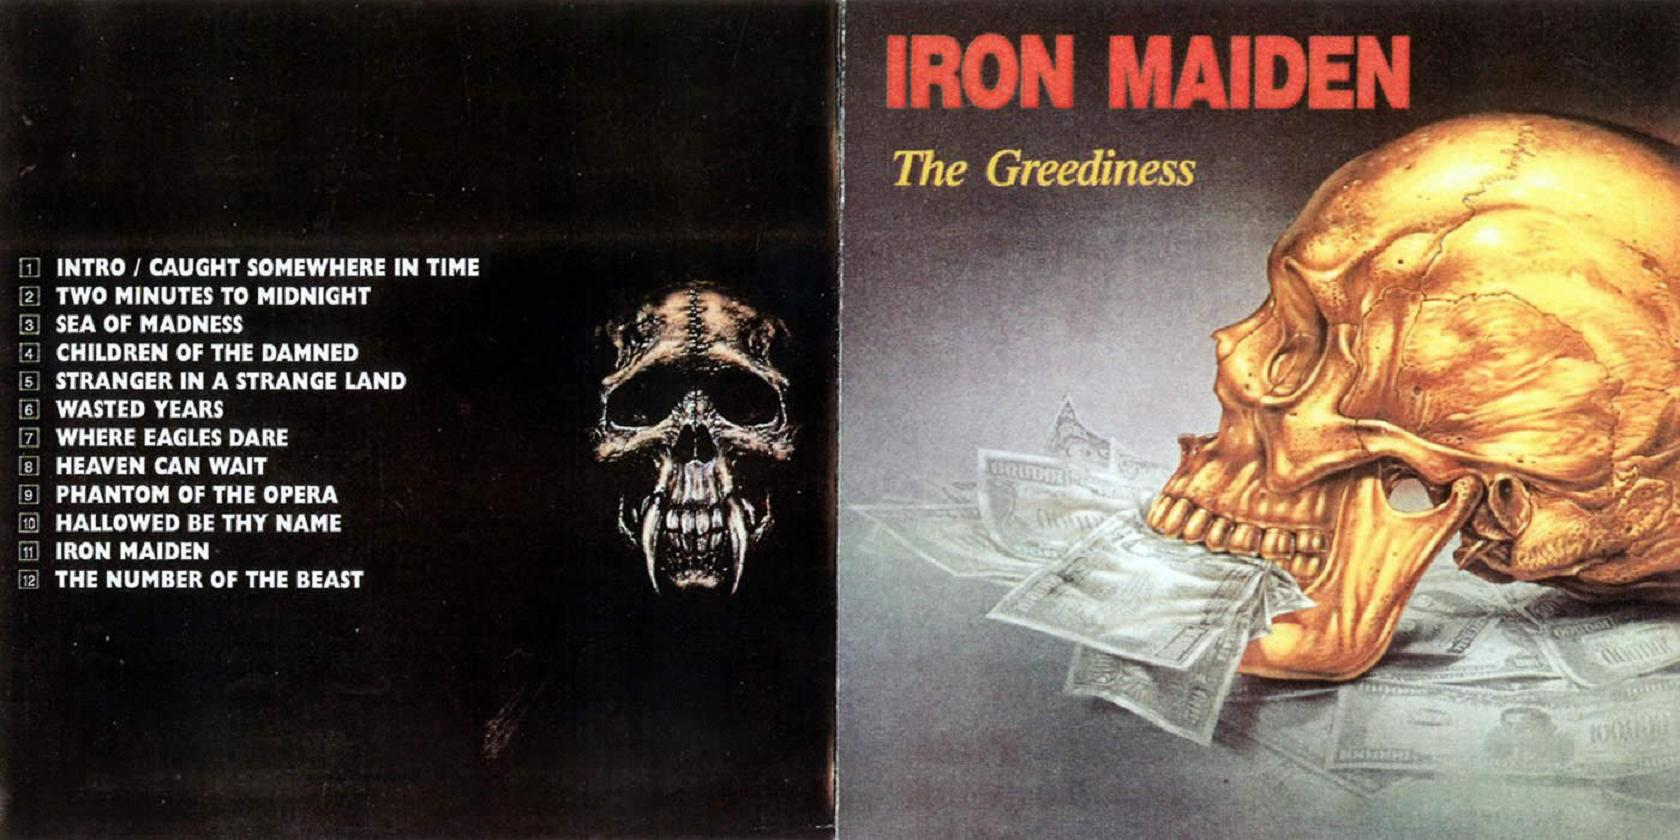 1986-11-22-THE_GREEDINESS-front